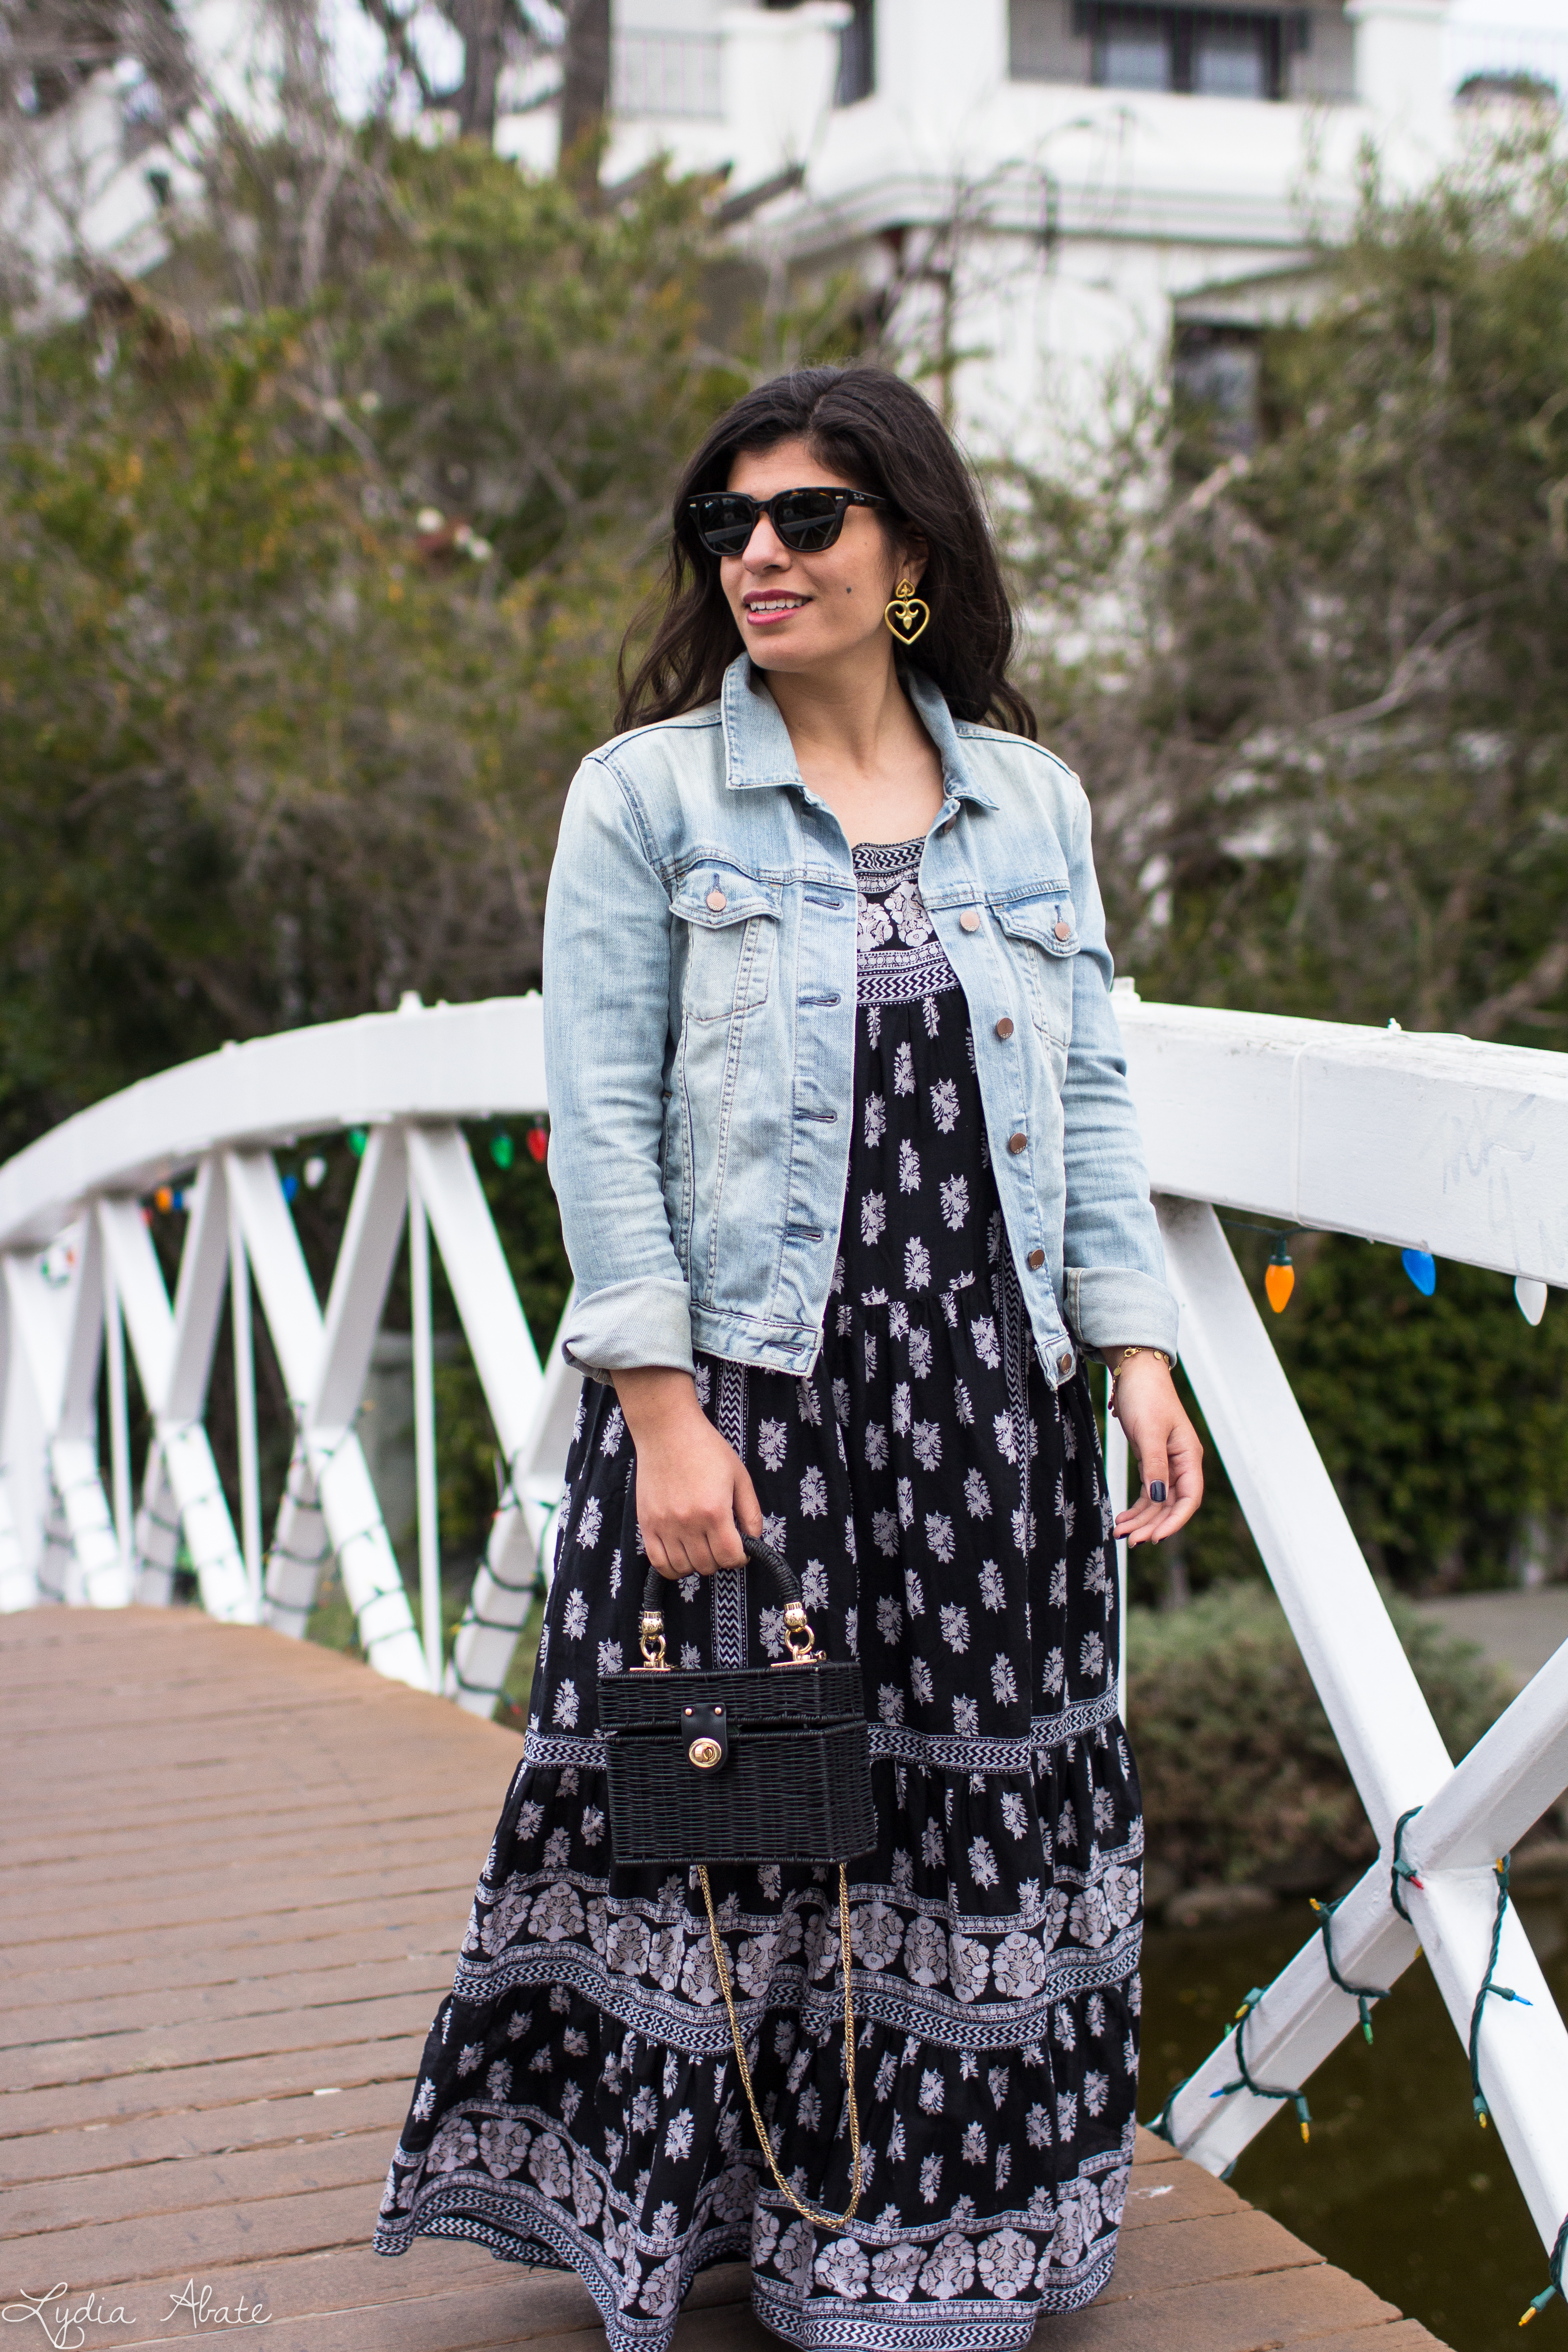 black and white maxi dress, denim jacket, white mules, straw bag-9.jpg